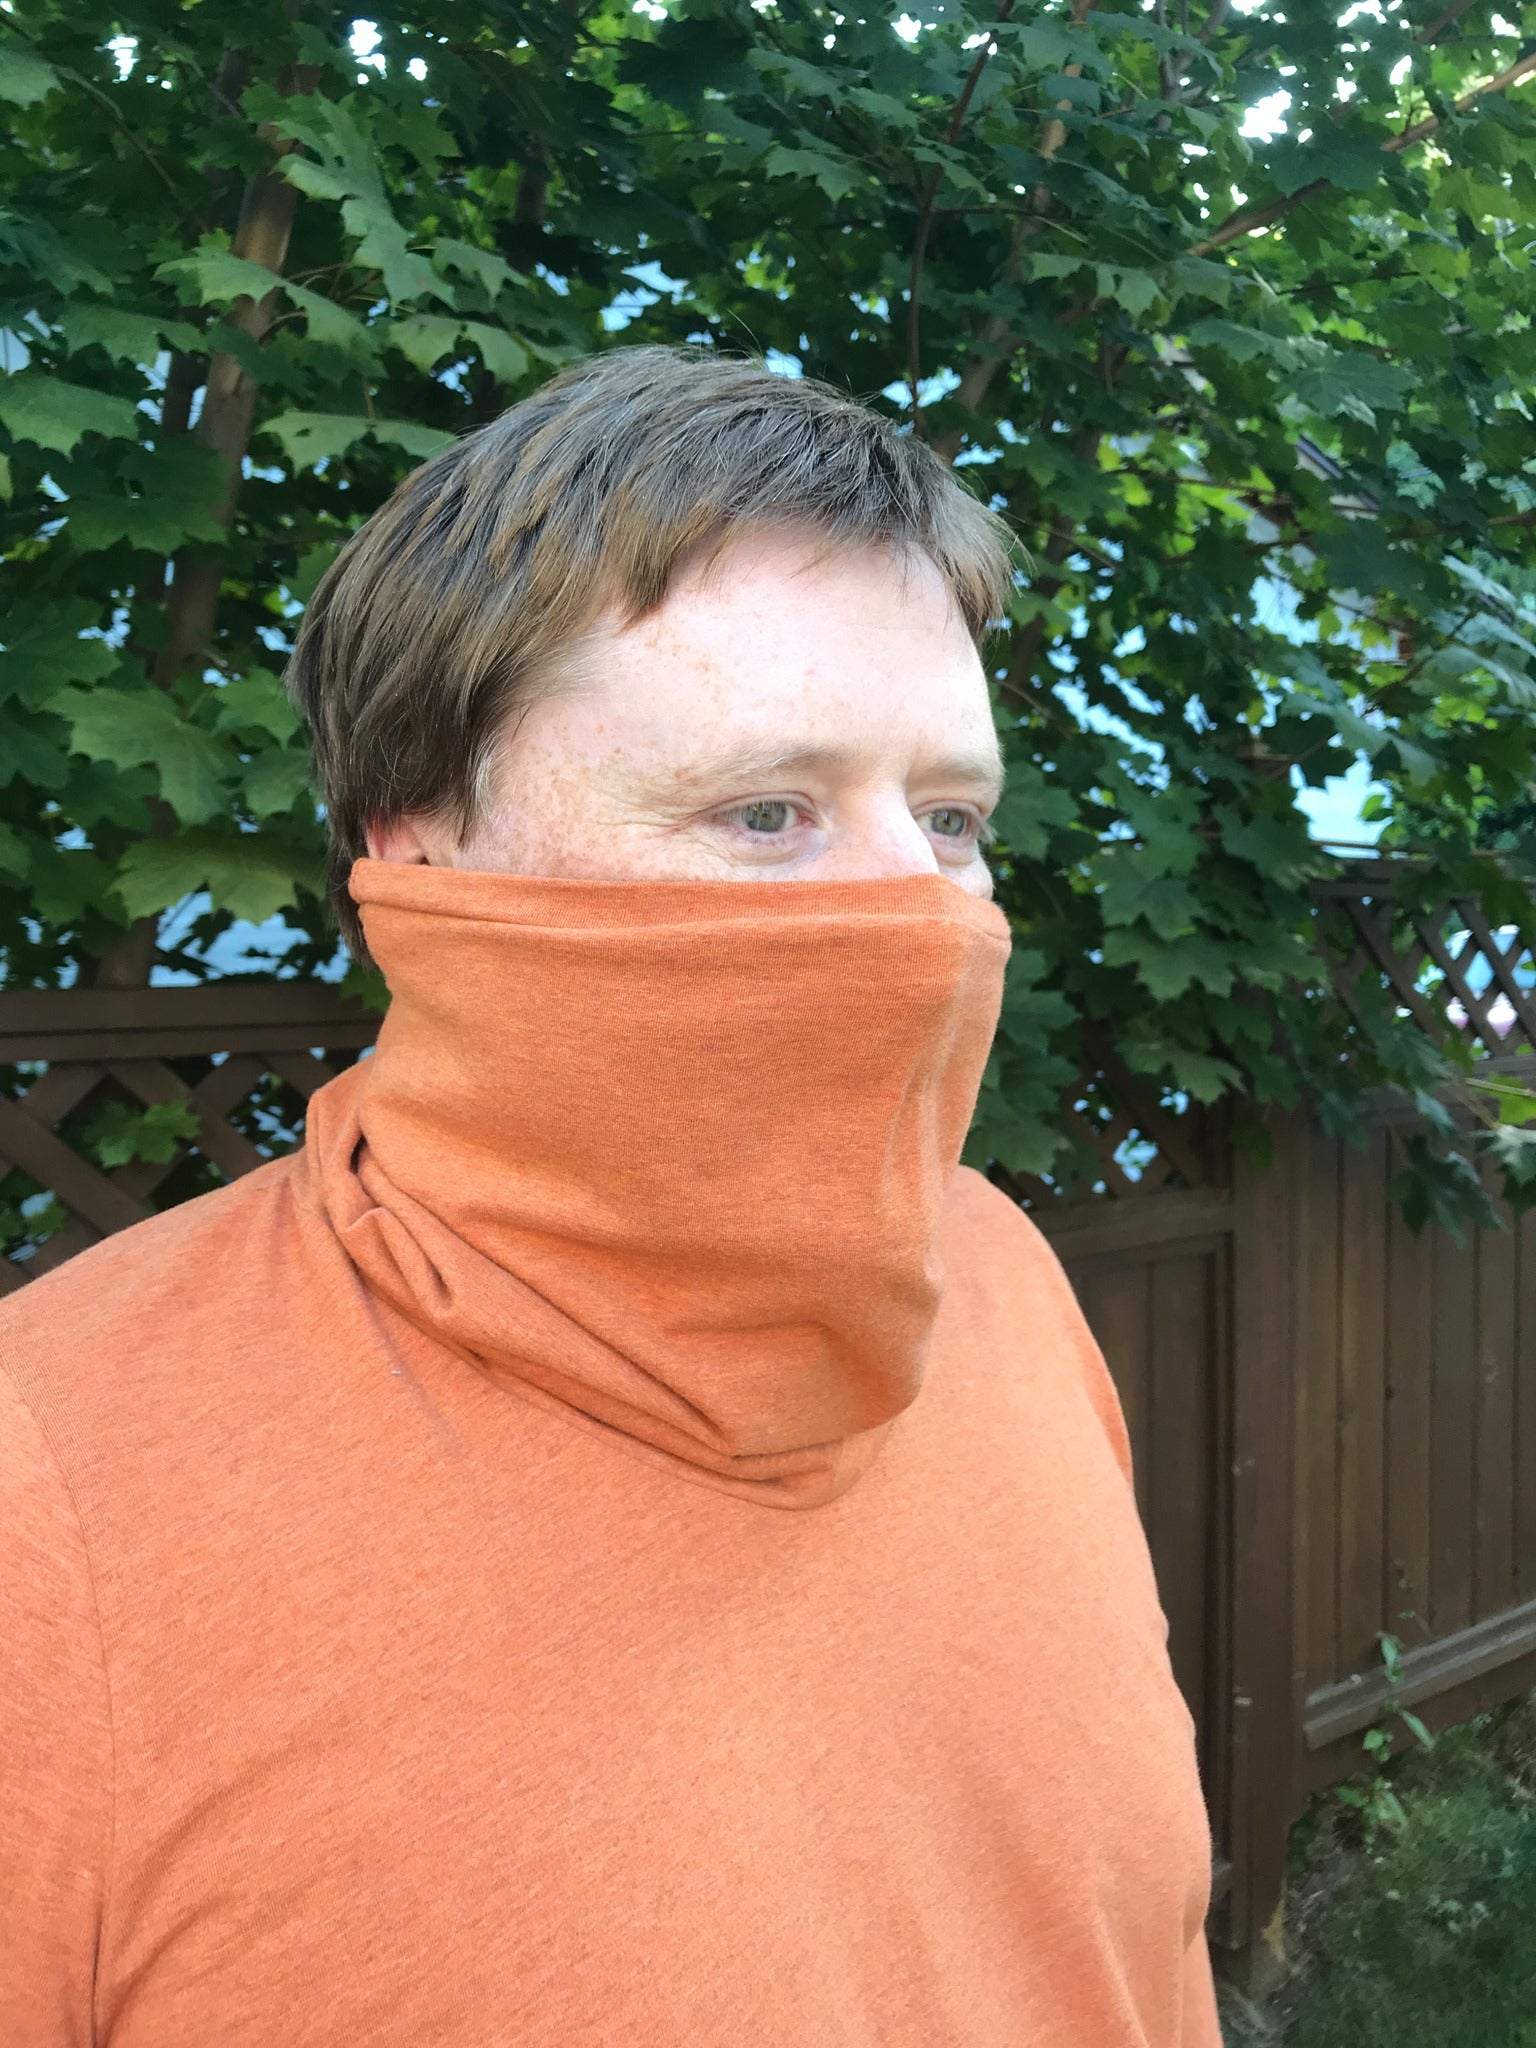 Later Gaiter Shirt for Adults - PDF SEWING PATTERN - Projector/A0 files included